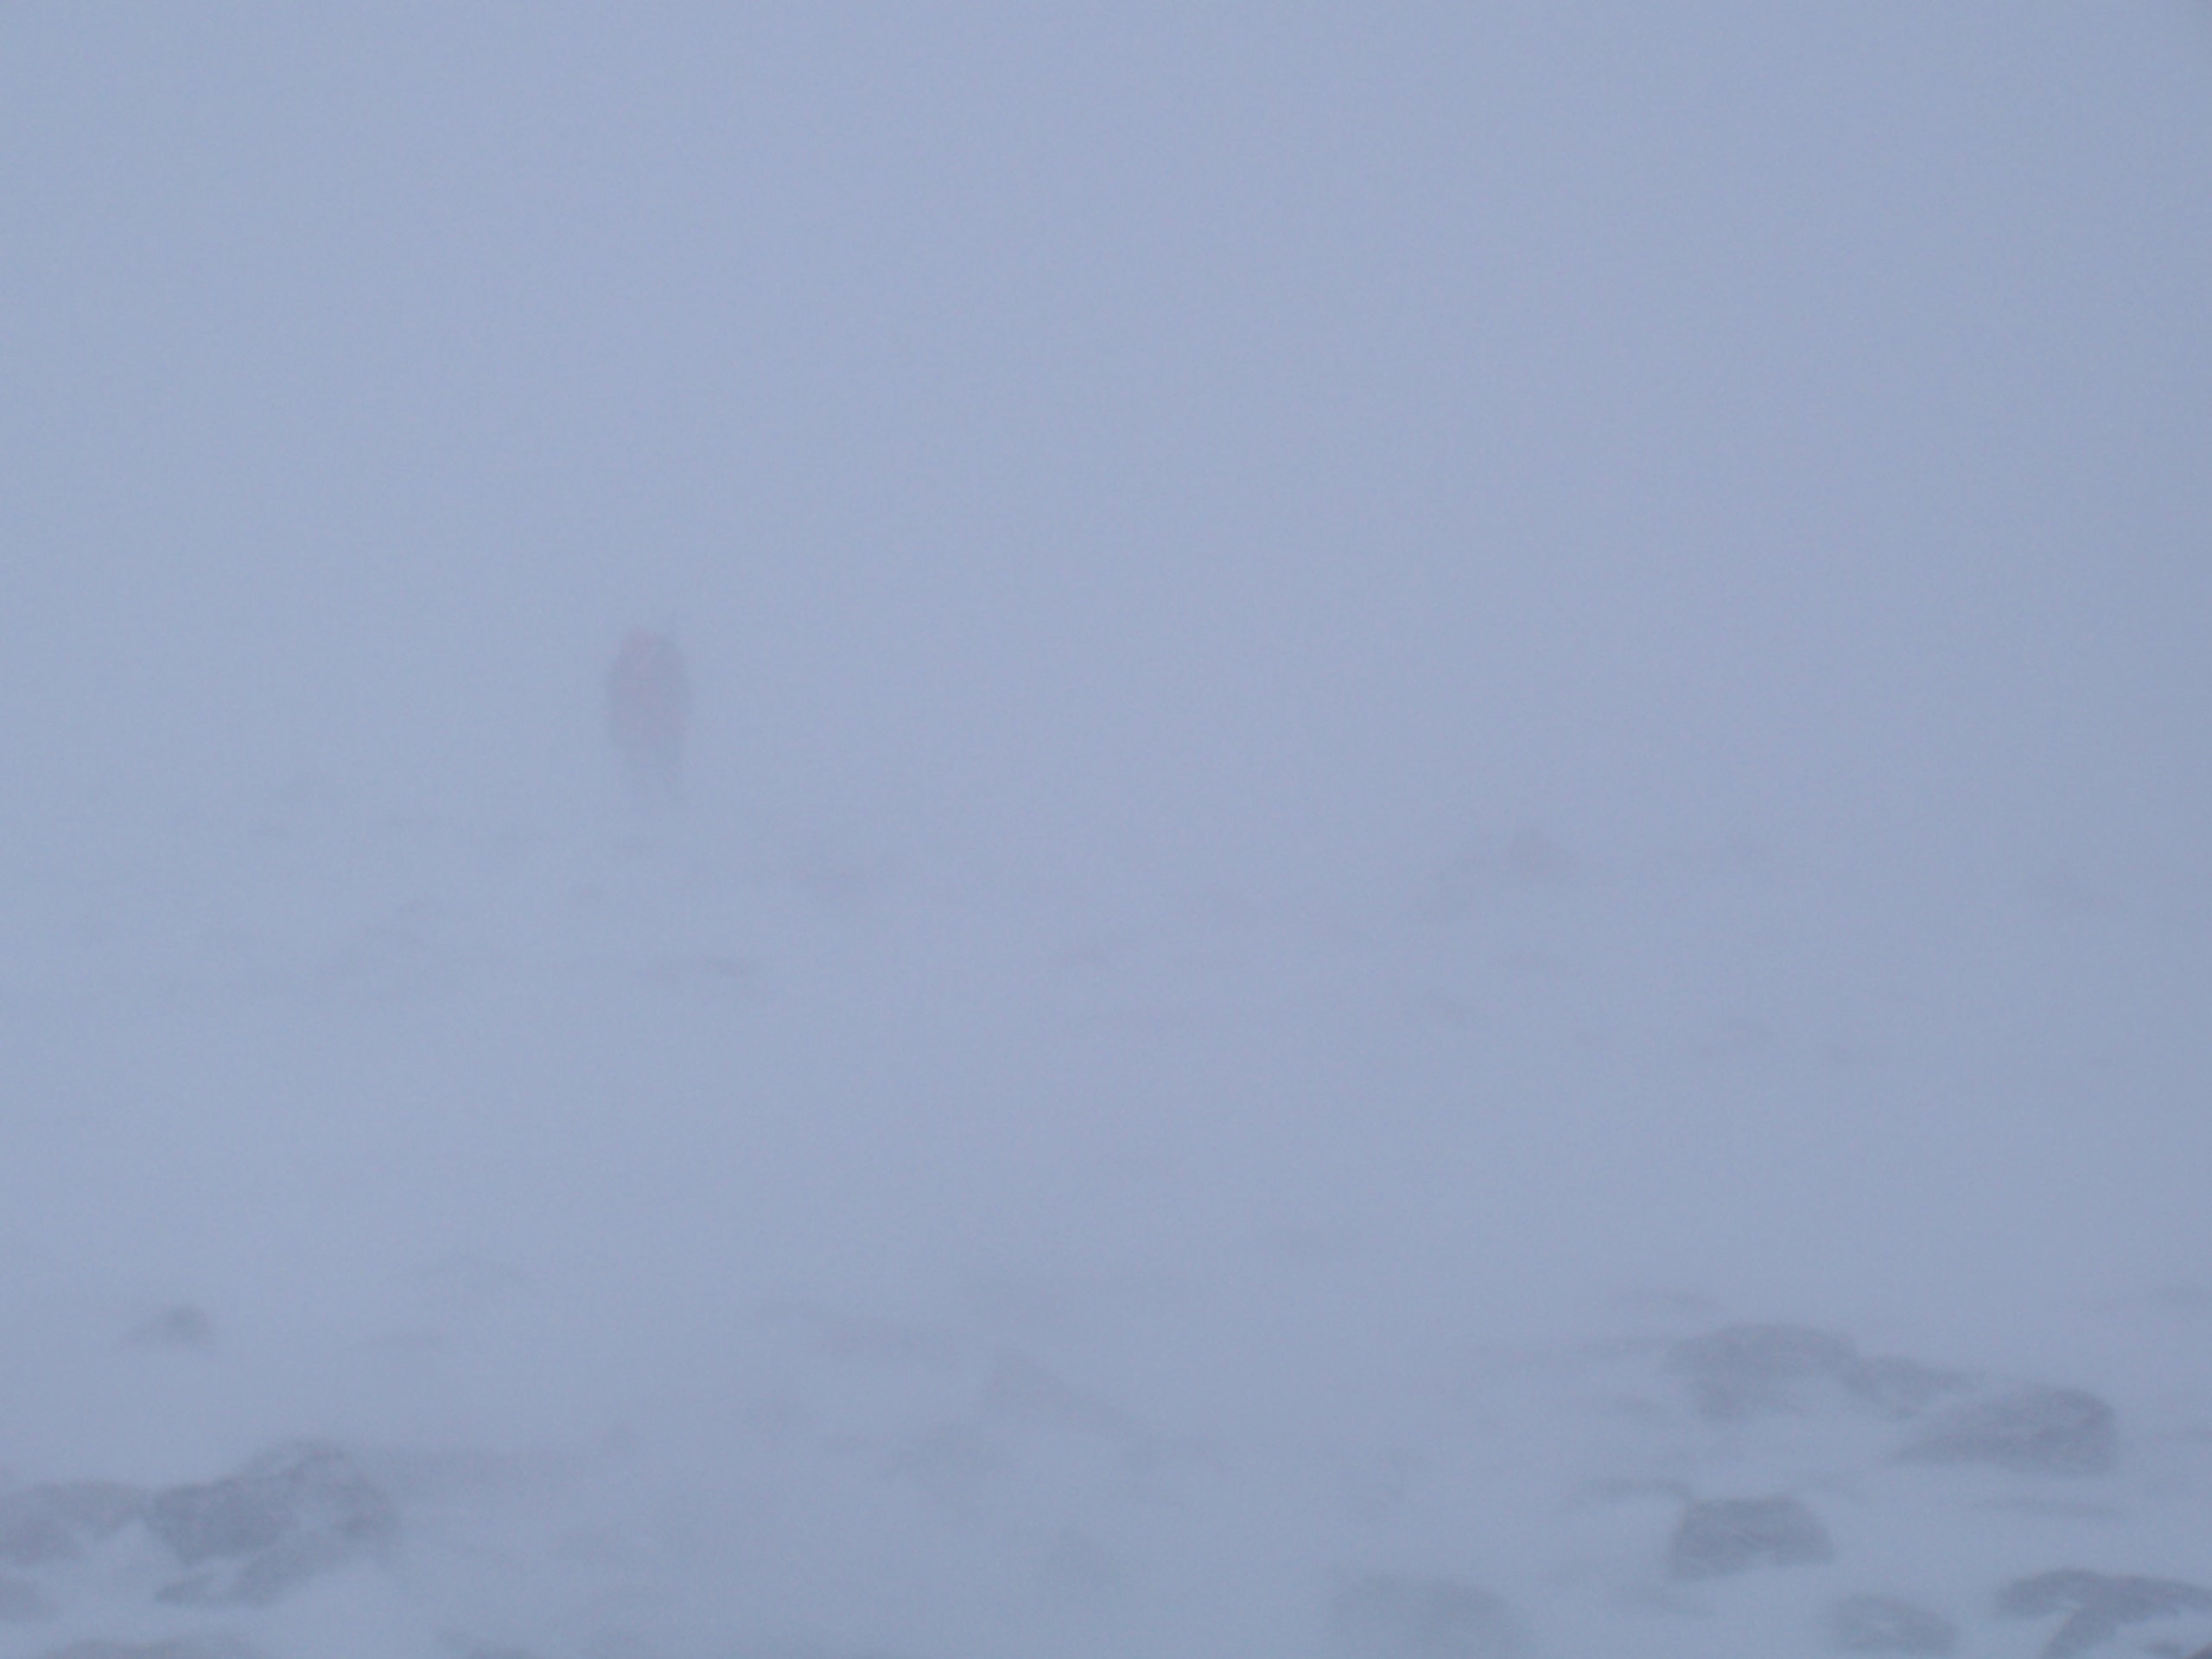 Poor visibility in blizzard conditions.